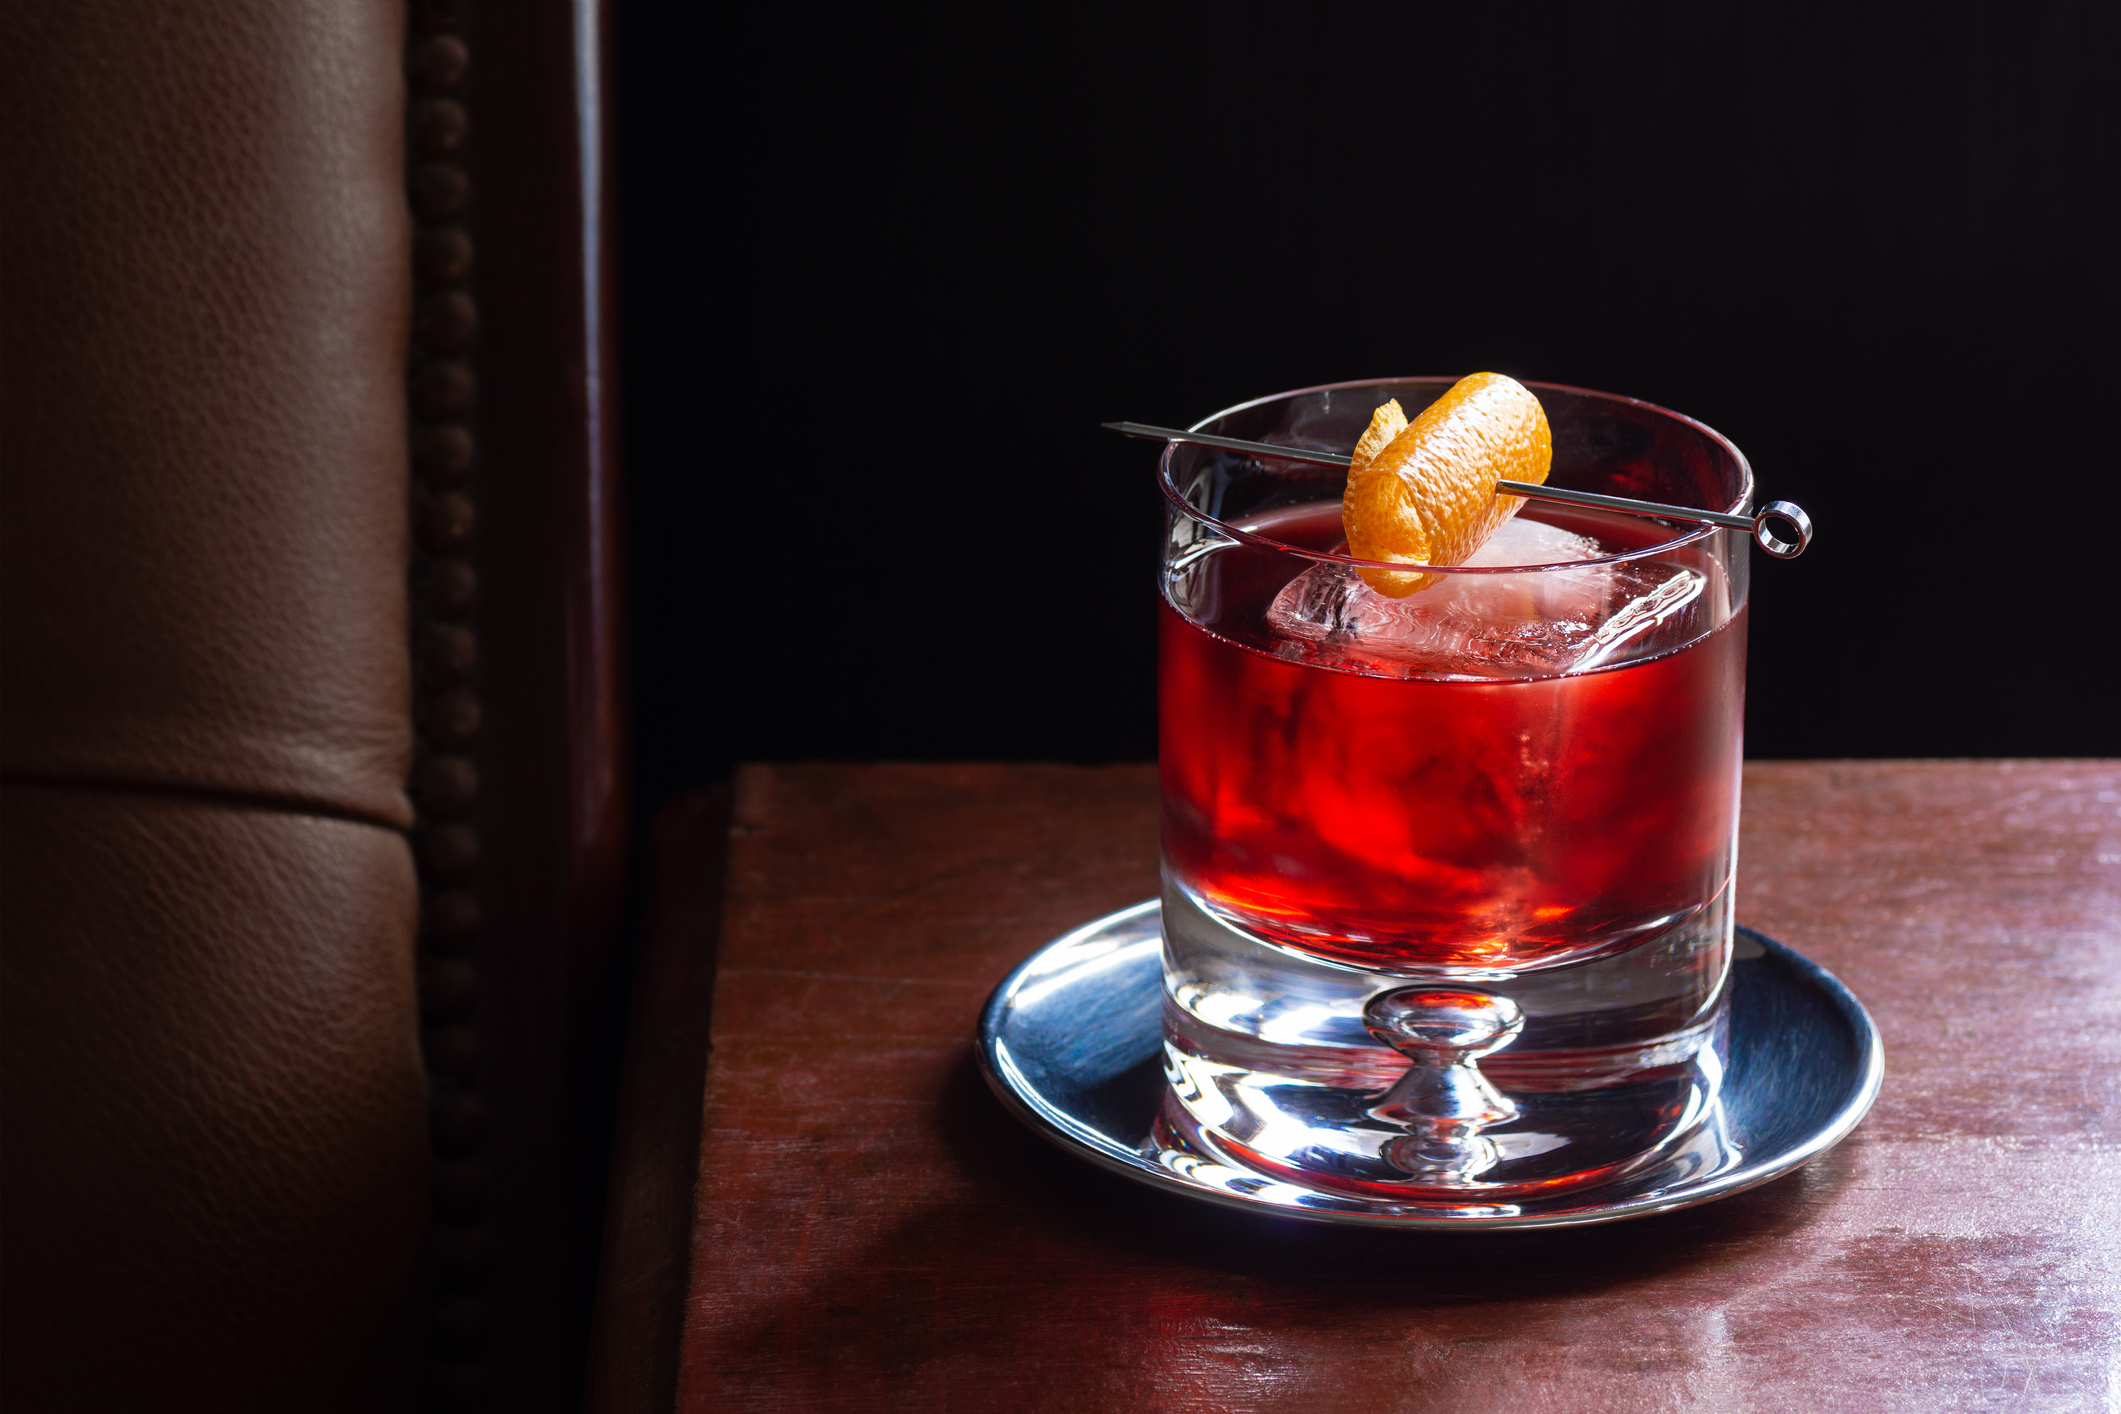 A Negroni cocktail, made from equal parts Campari, gin, and red vermouth in a rocks glass with ice and an orange twist. The drink is in a dark luxurious bar and there is copy space in the black background.